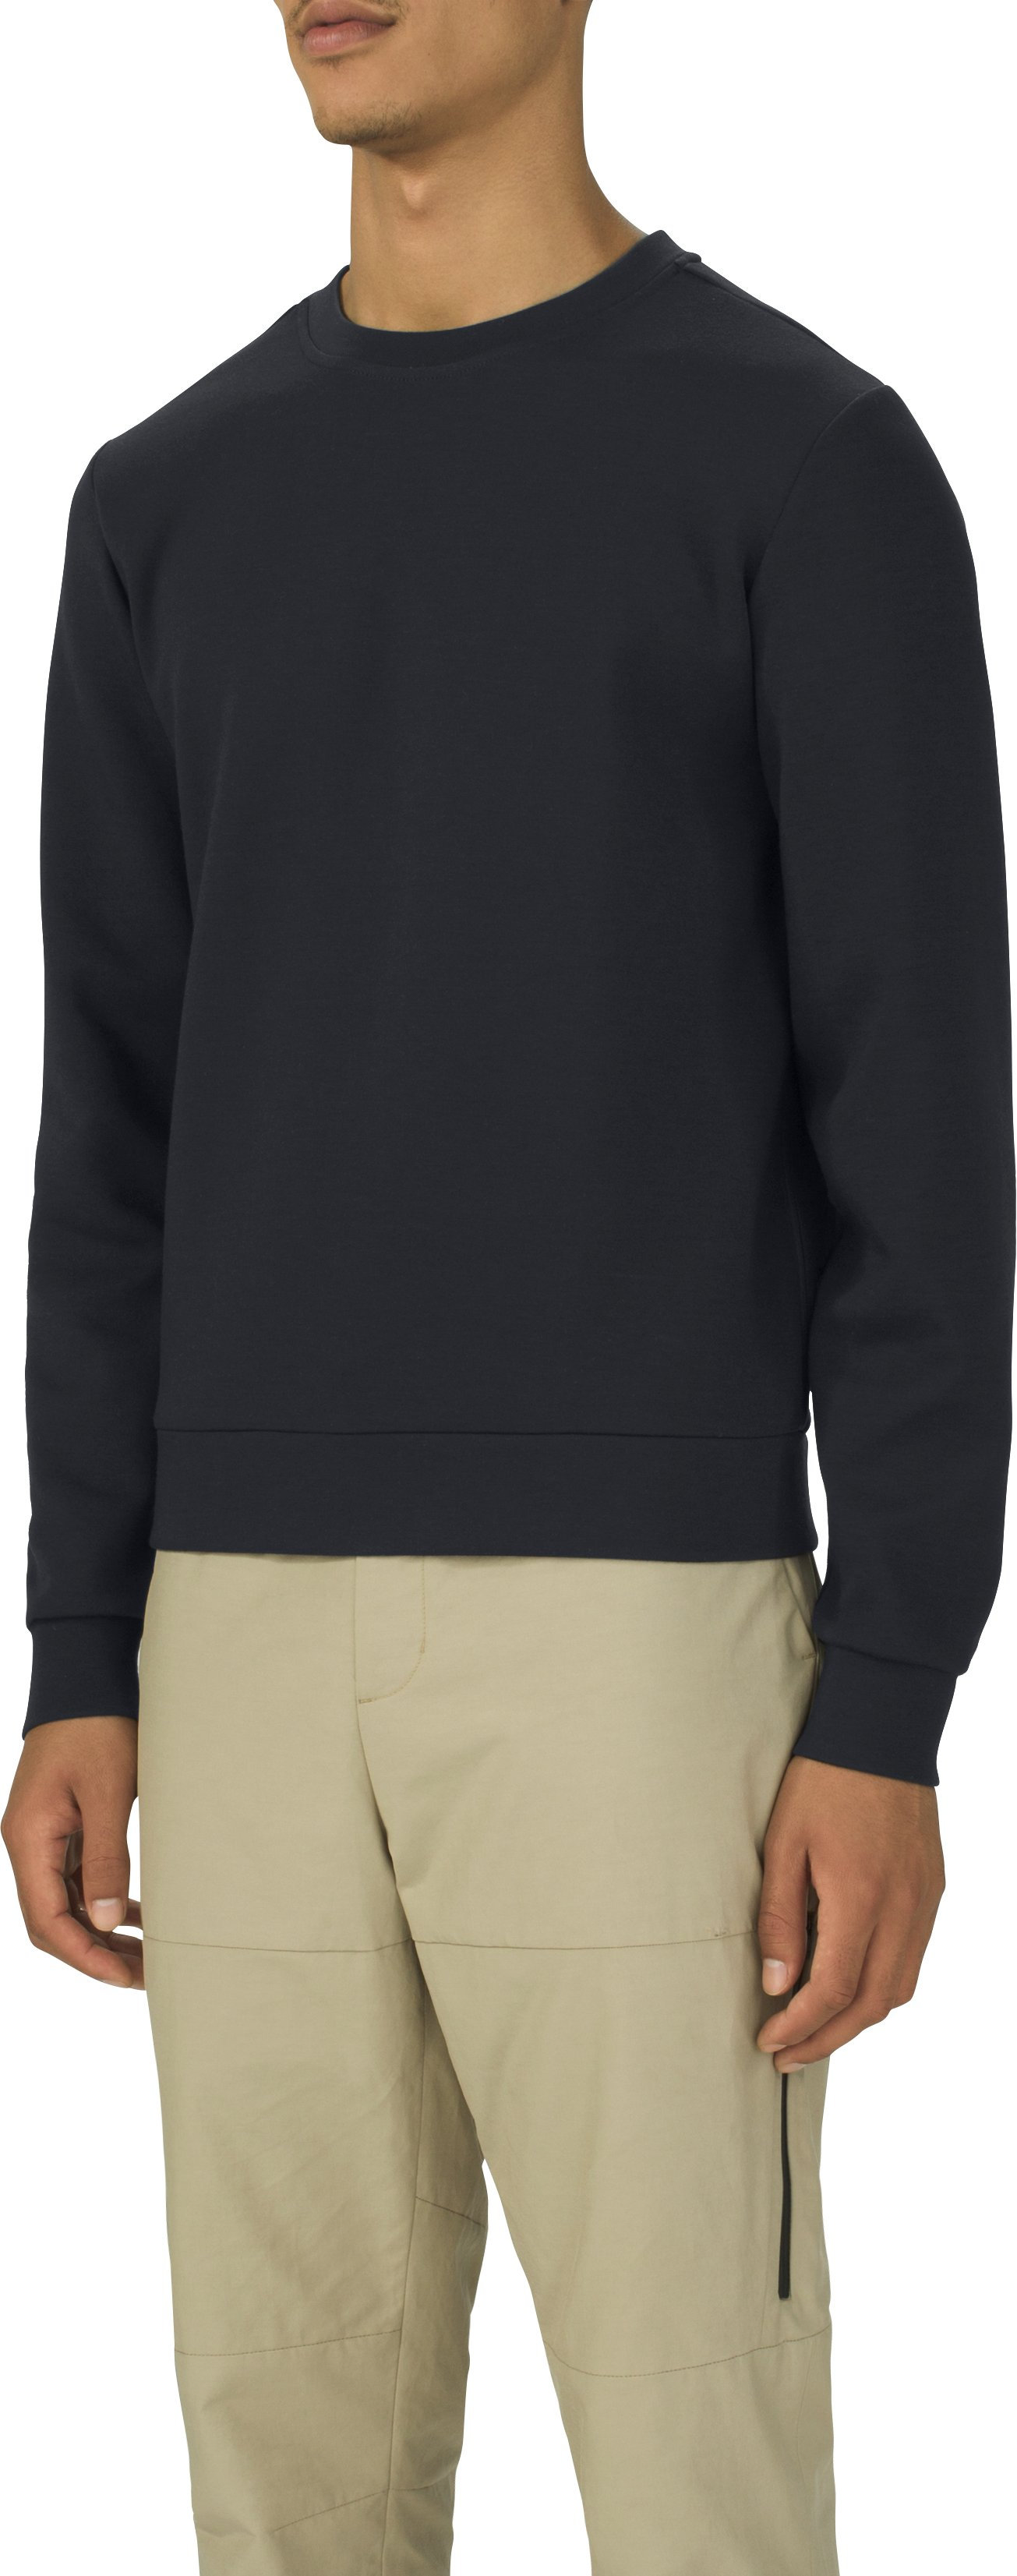 Men's UAS Tailgate Crew Sweatshirt, Black